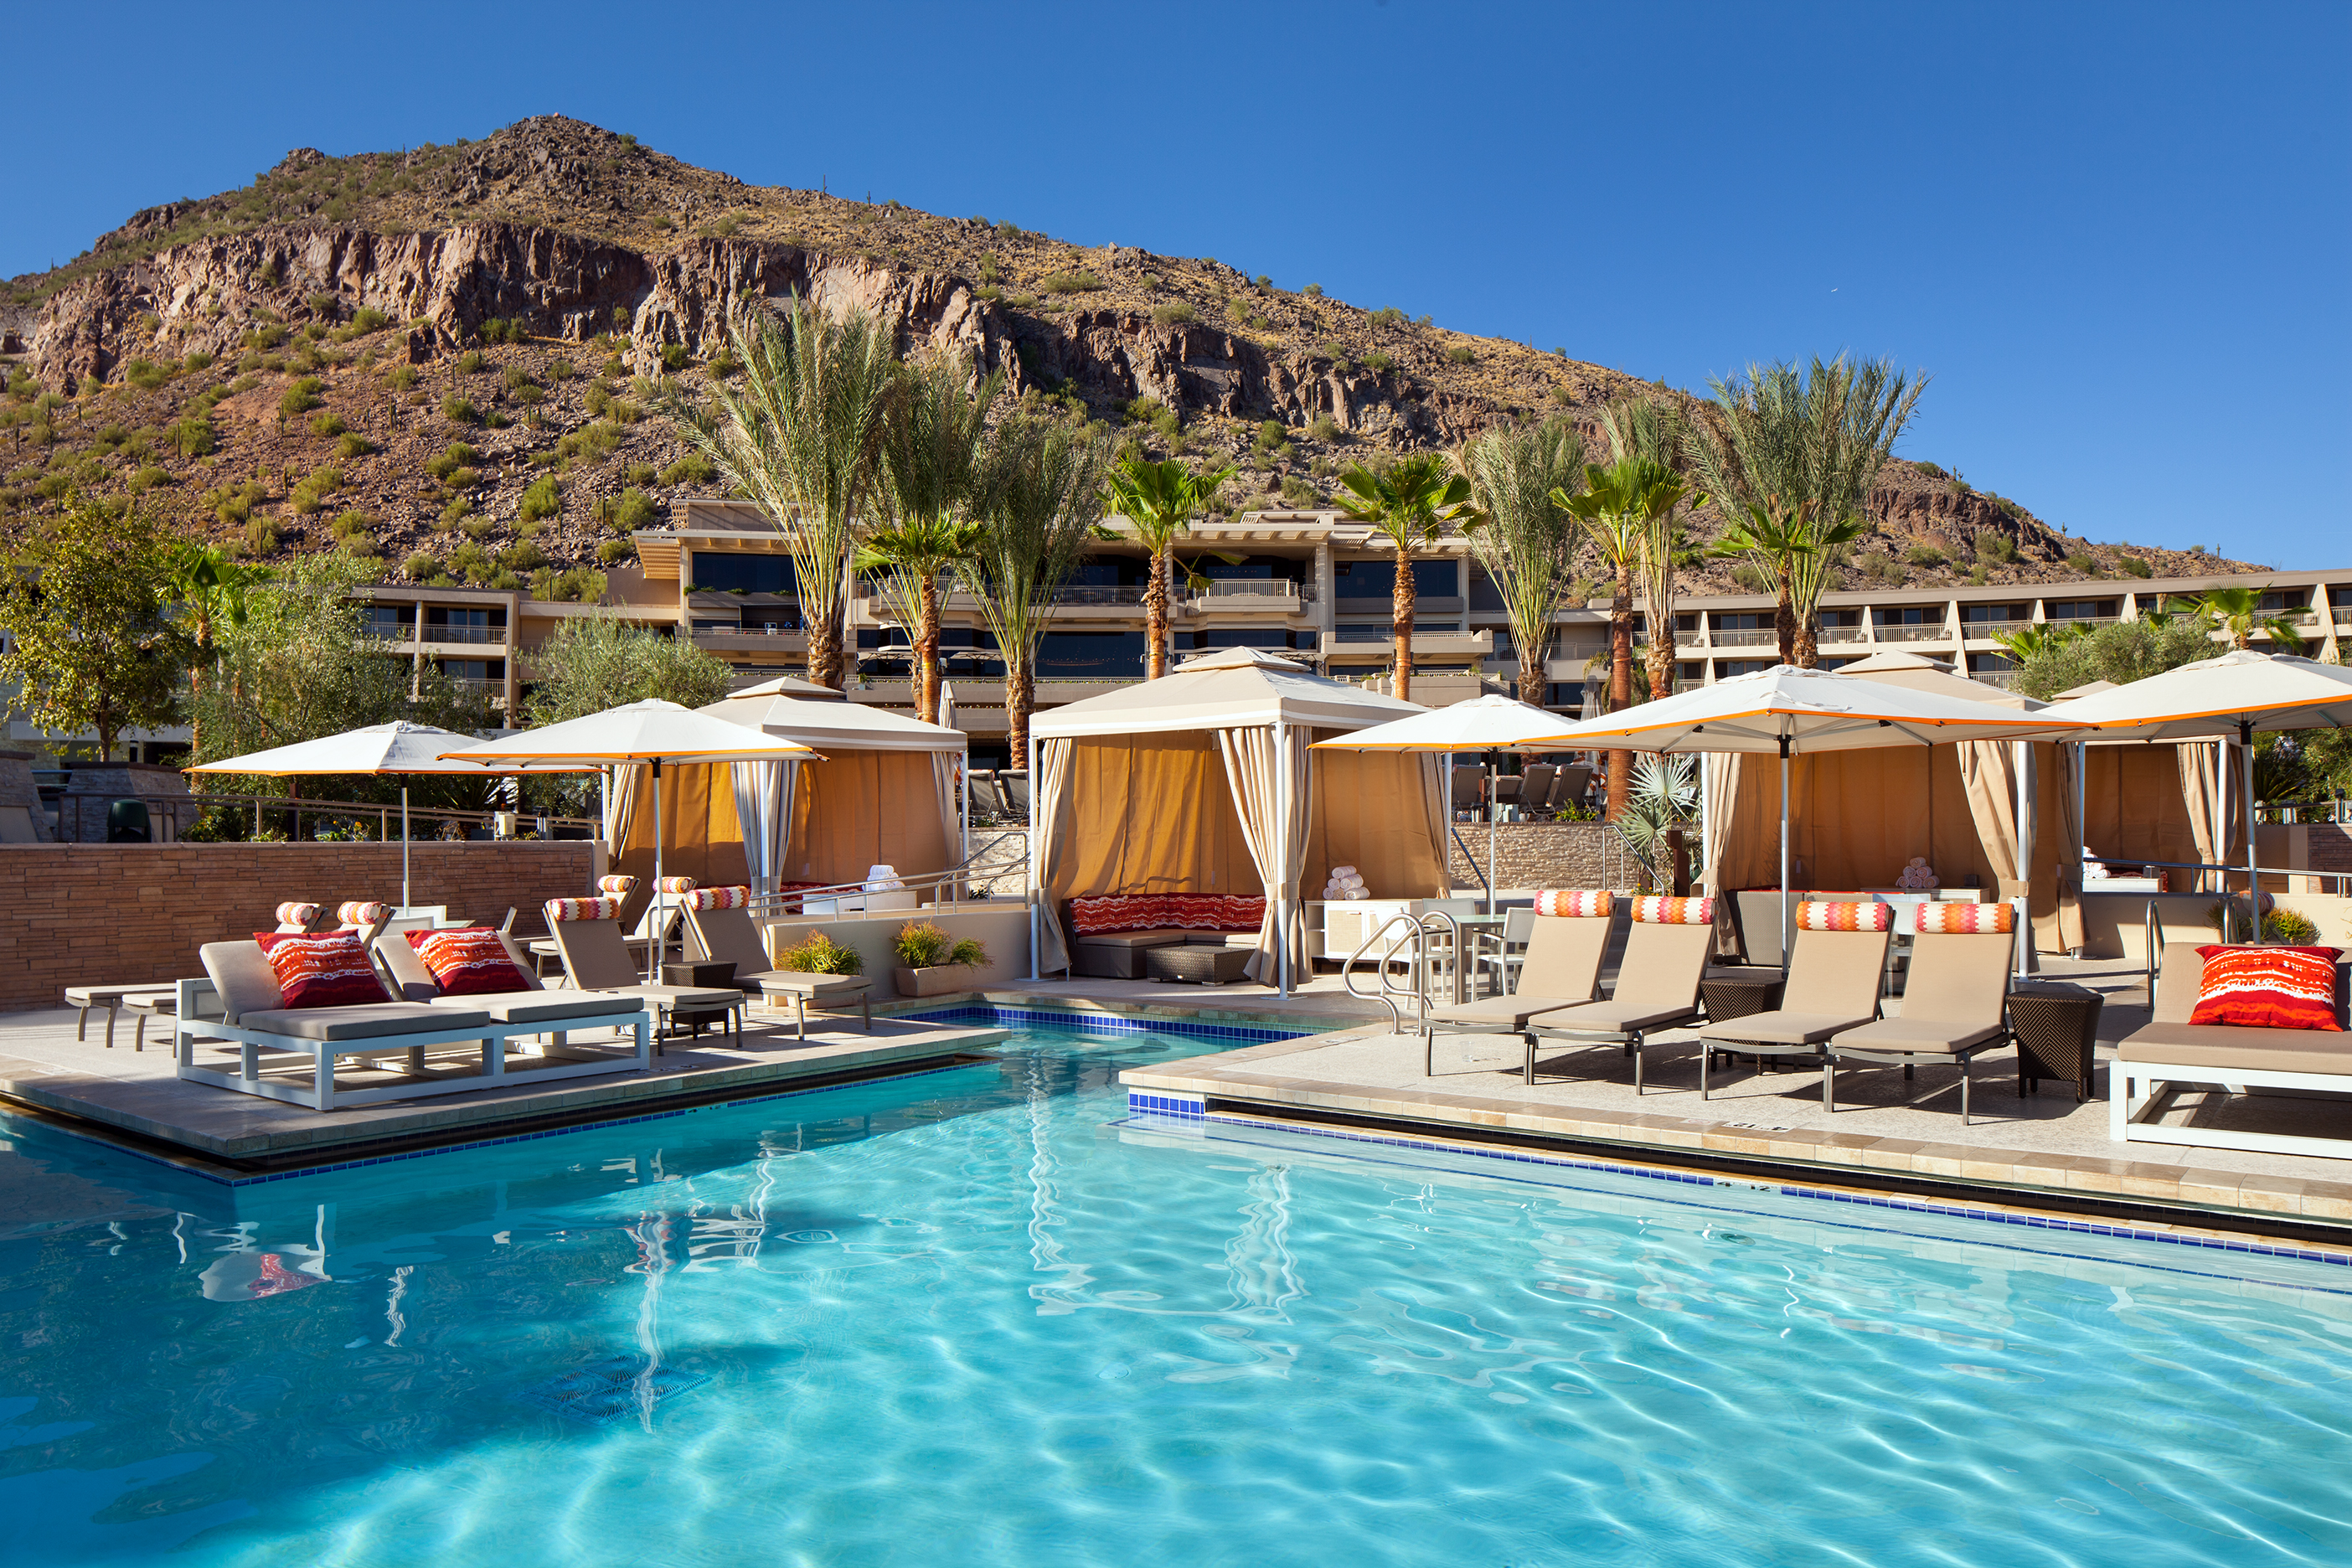 The Phoenician – Luxury Resort in Scottsdale, Arizona